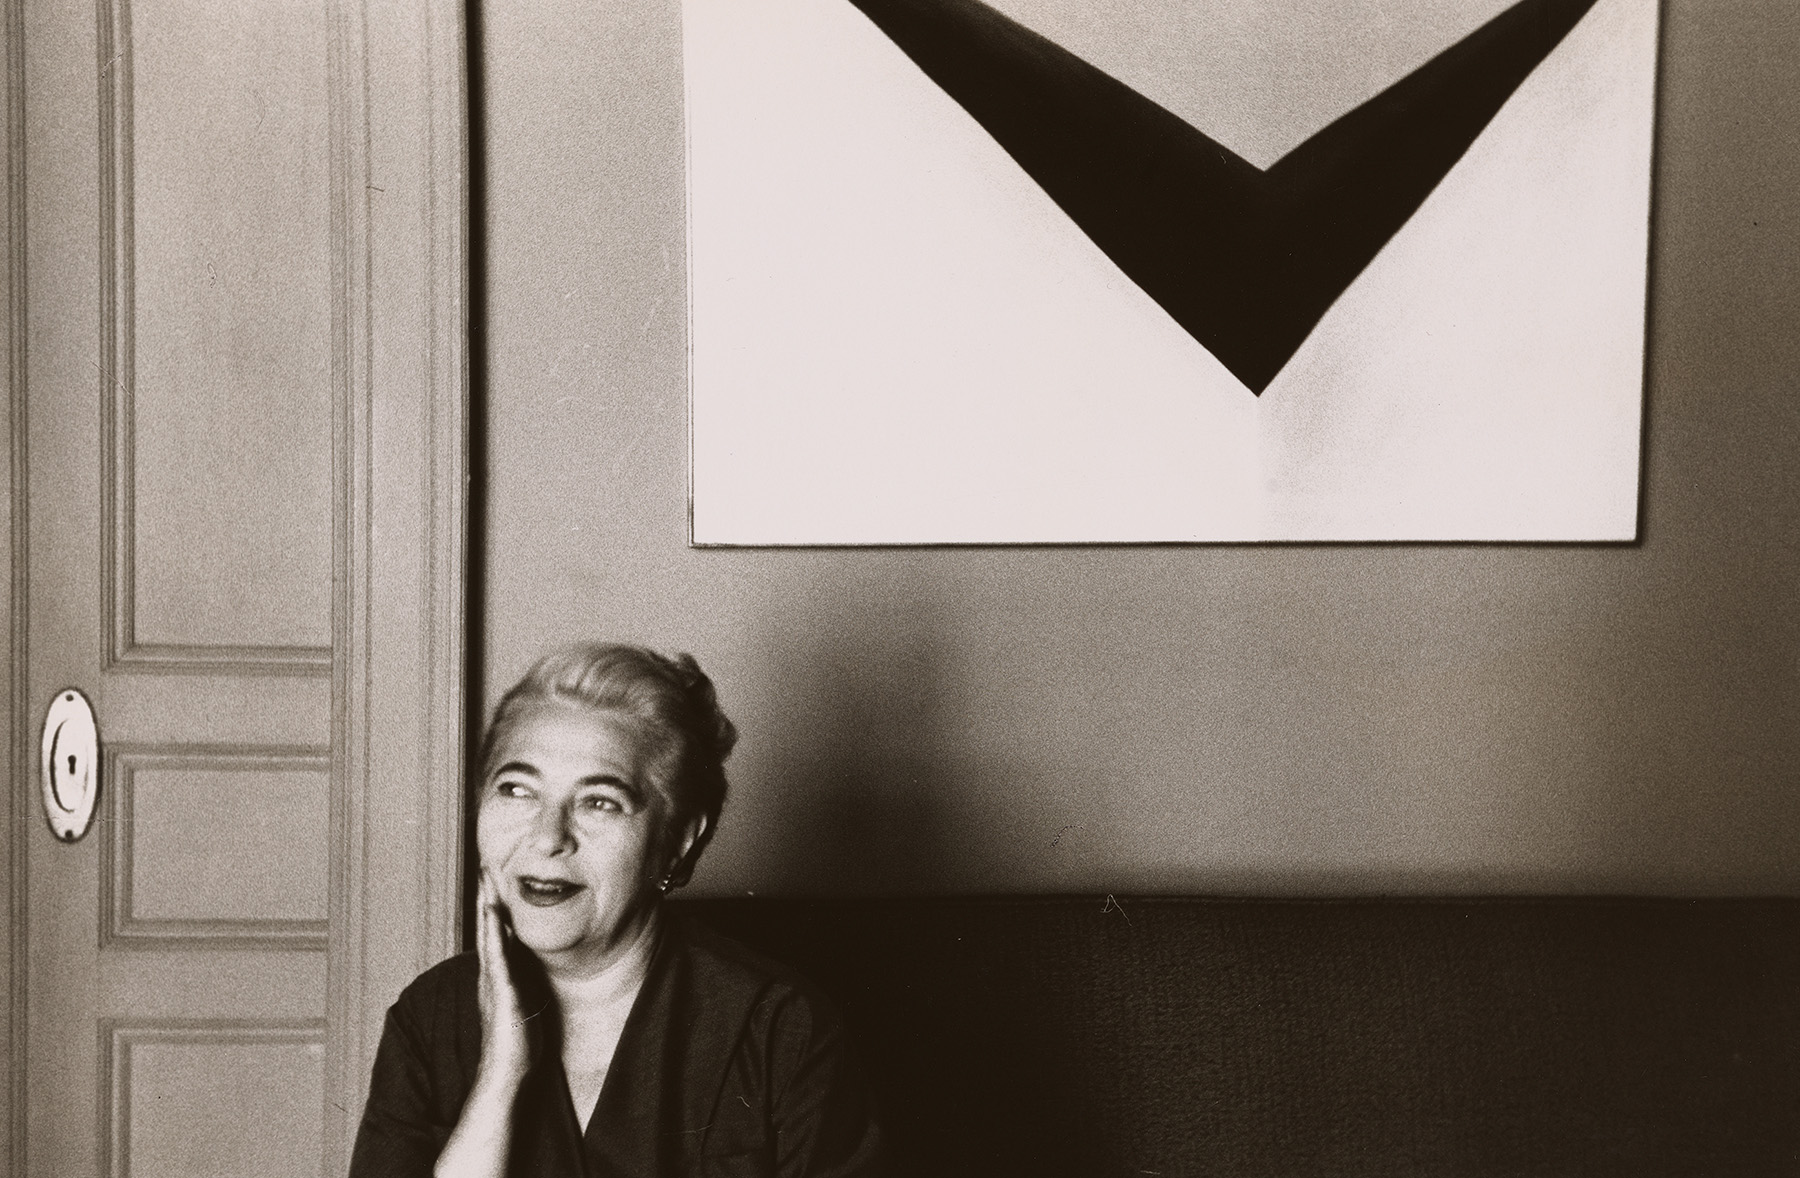 """Halpert posing with Georgia O'Keefe's """"In the Patio IX,"""" part of her personal collection. Archives of American Art, Smithsonian Institution/Downtown Gallery records"""